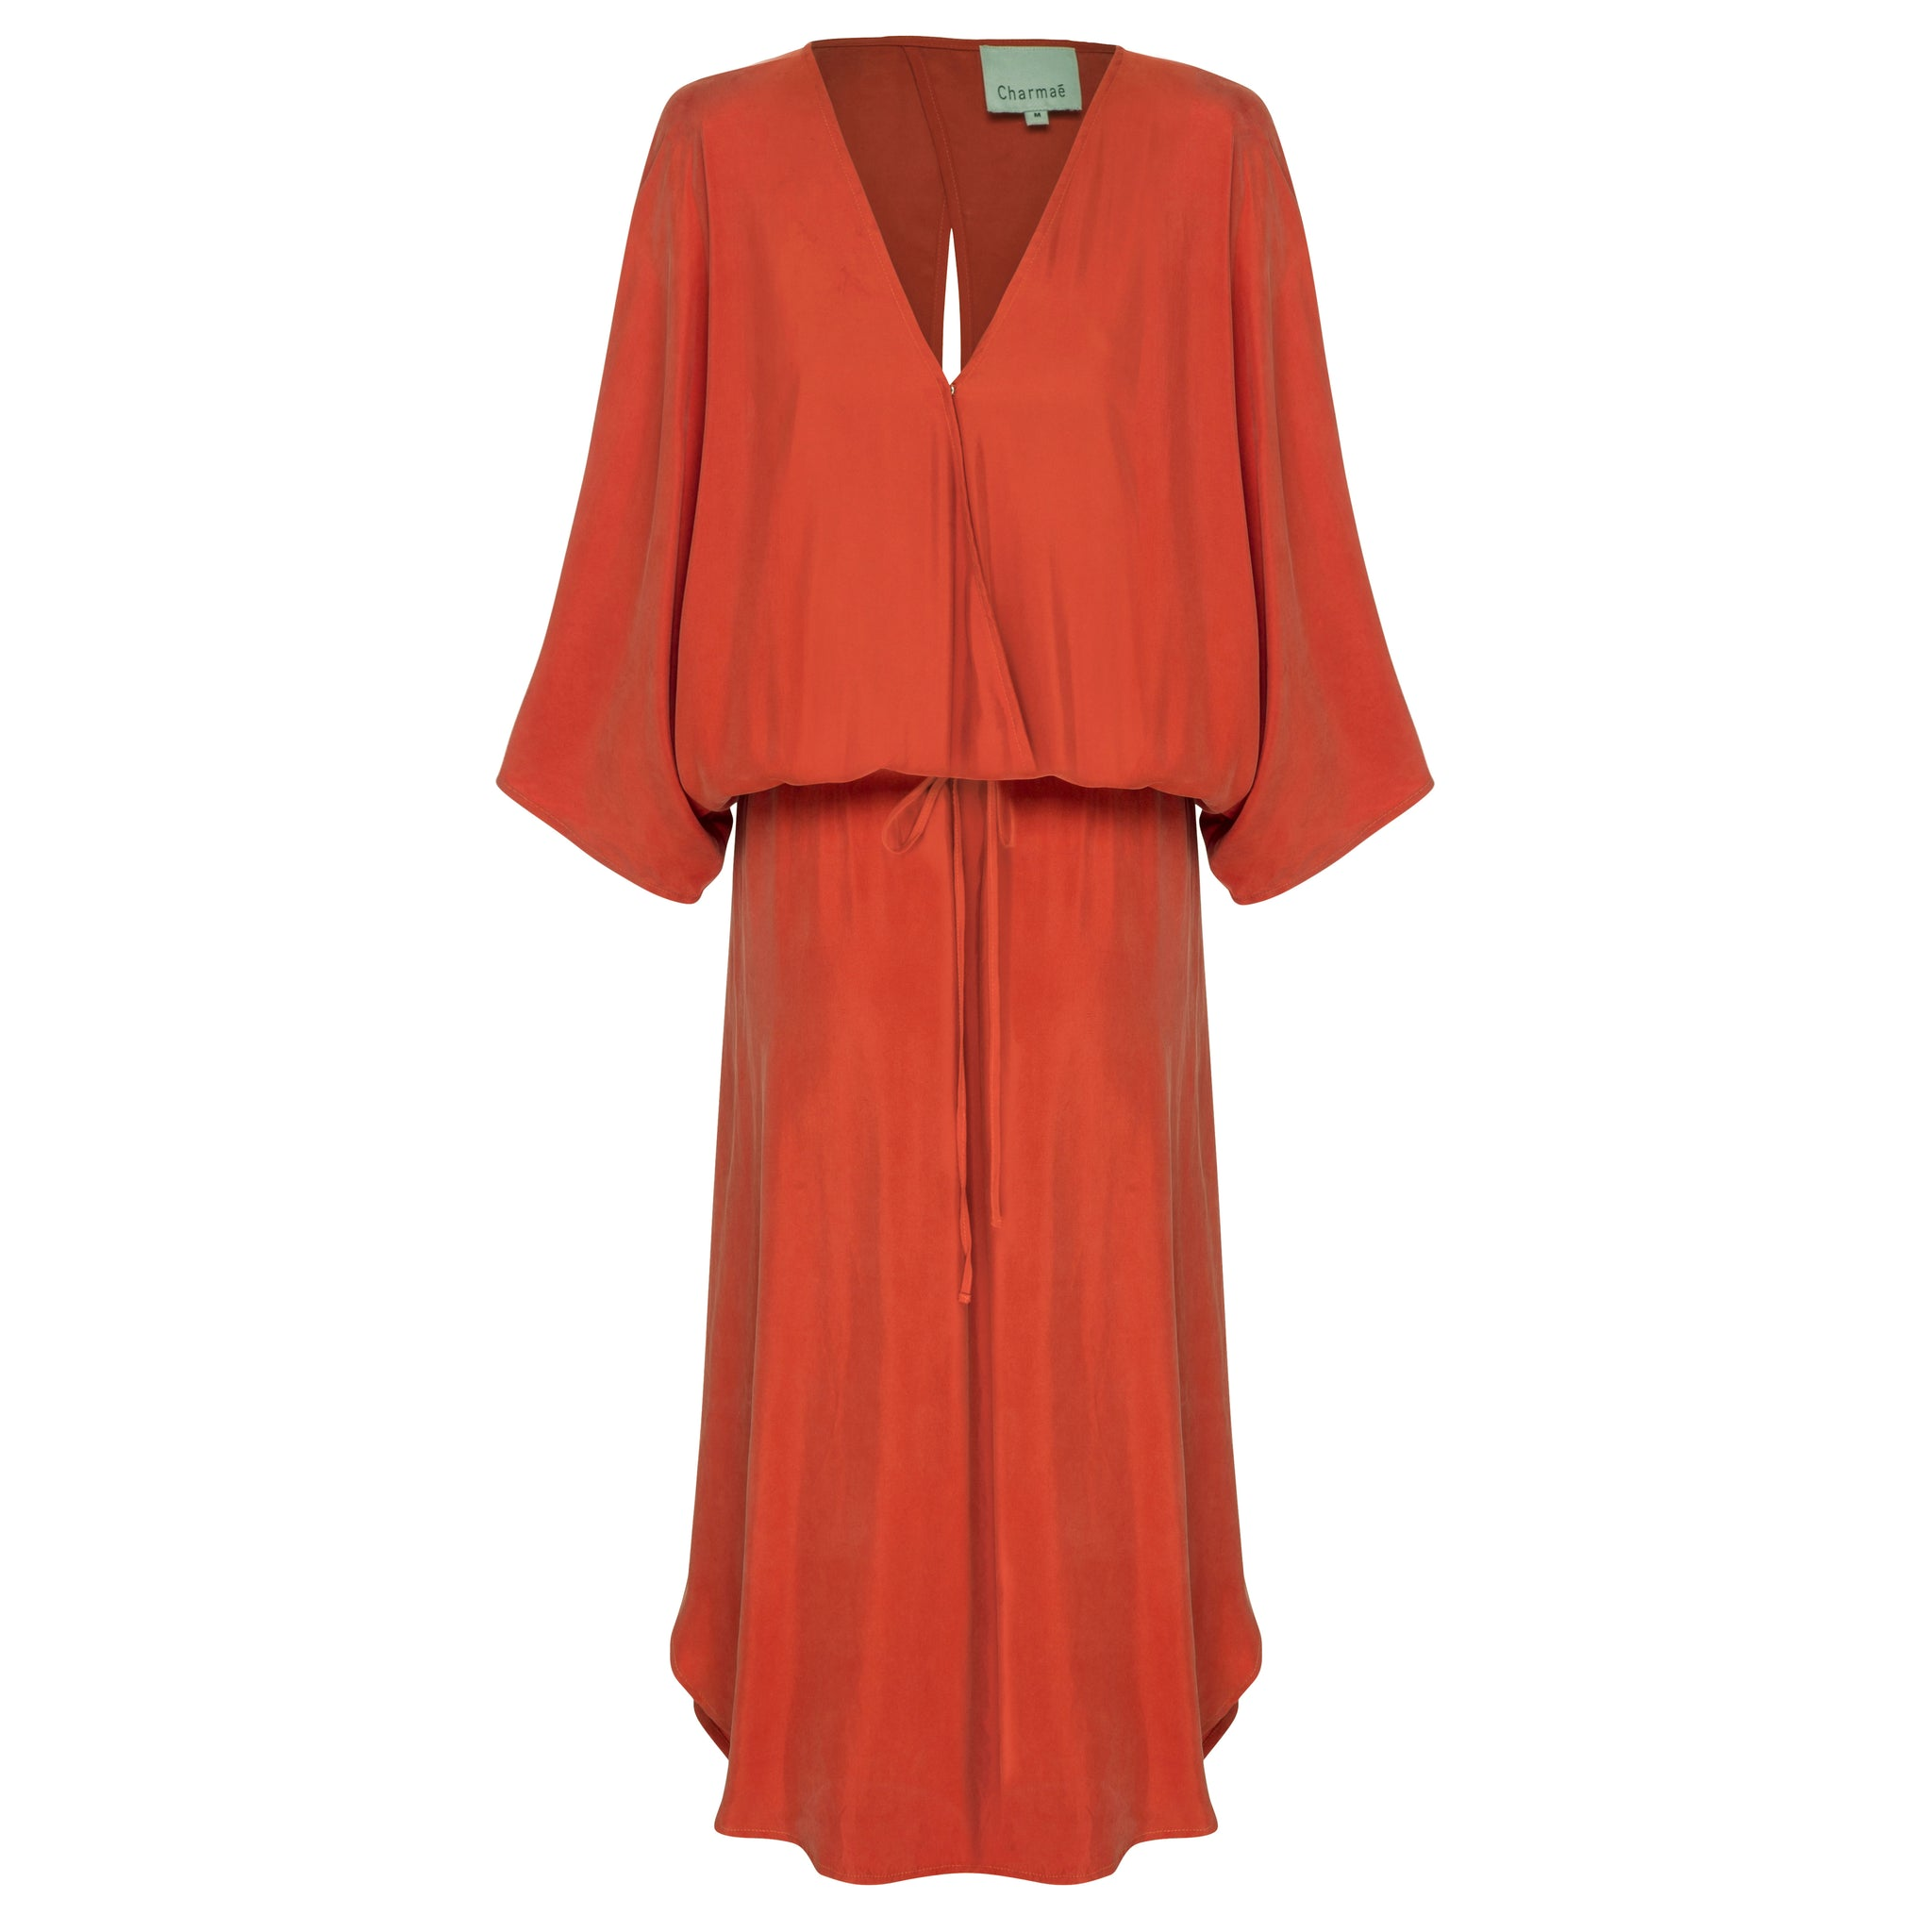 Caspian Dress - Peached Cupro